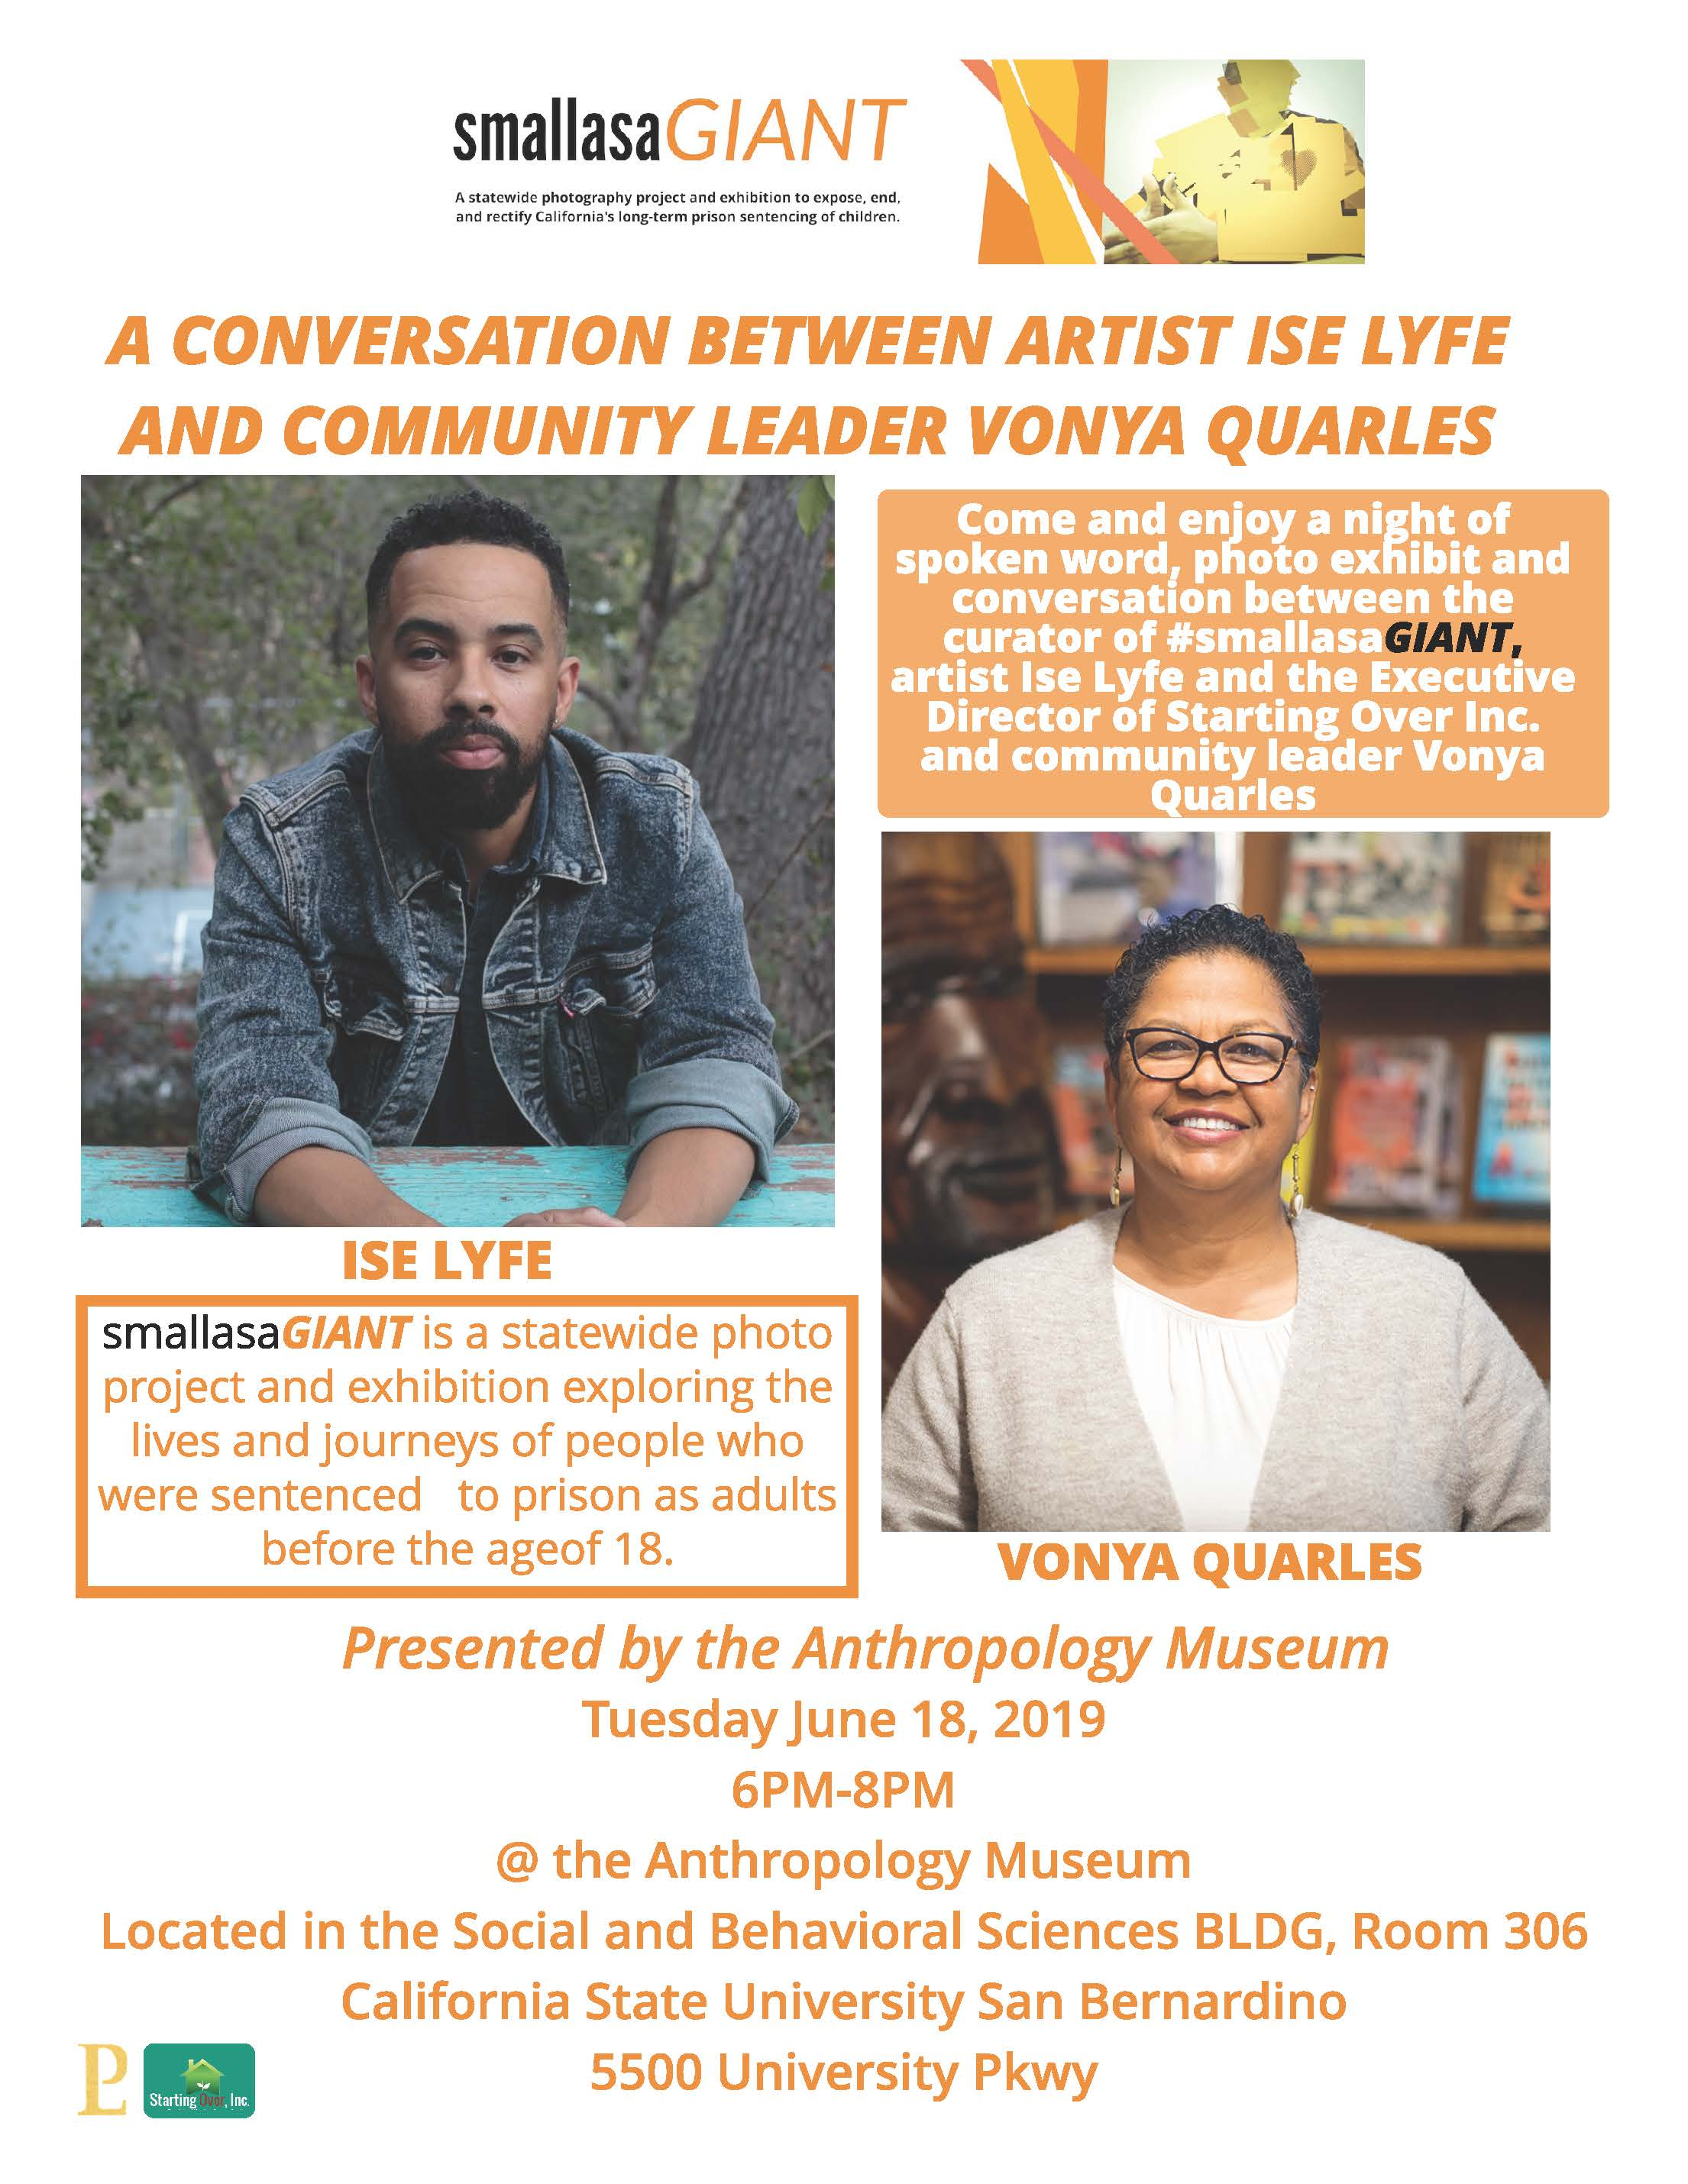 """A conversation between curator/artist Ise Lyfe and community leader Vonya Quarles will highlight the closing reception for the exhibit """"smallasaGIANT"""" at the Cal State San Bernardino Anthropology Museum on Tuesday, June 18."""